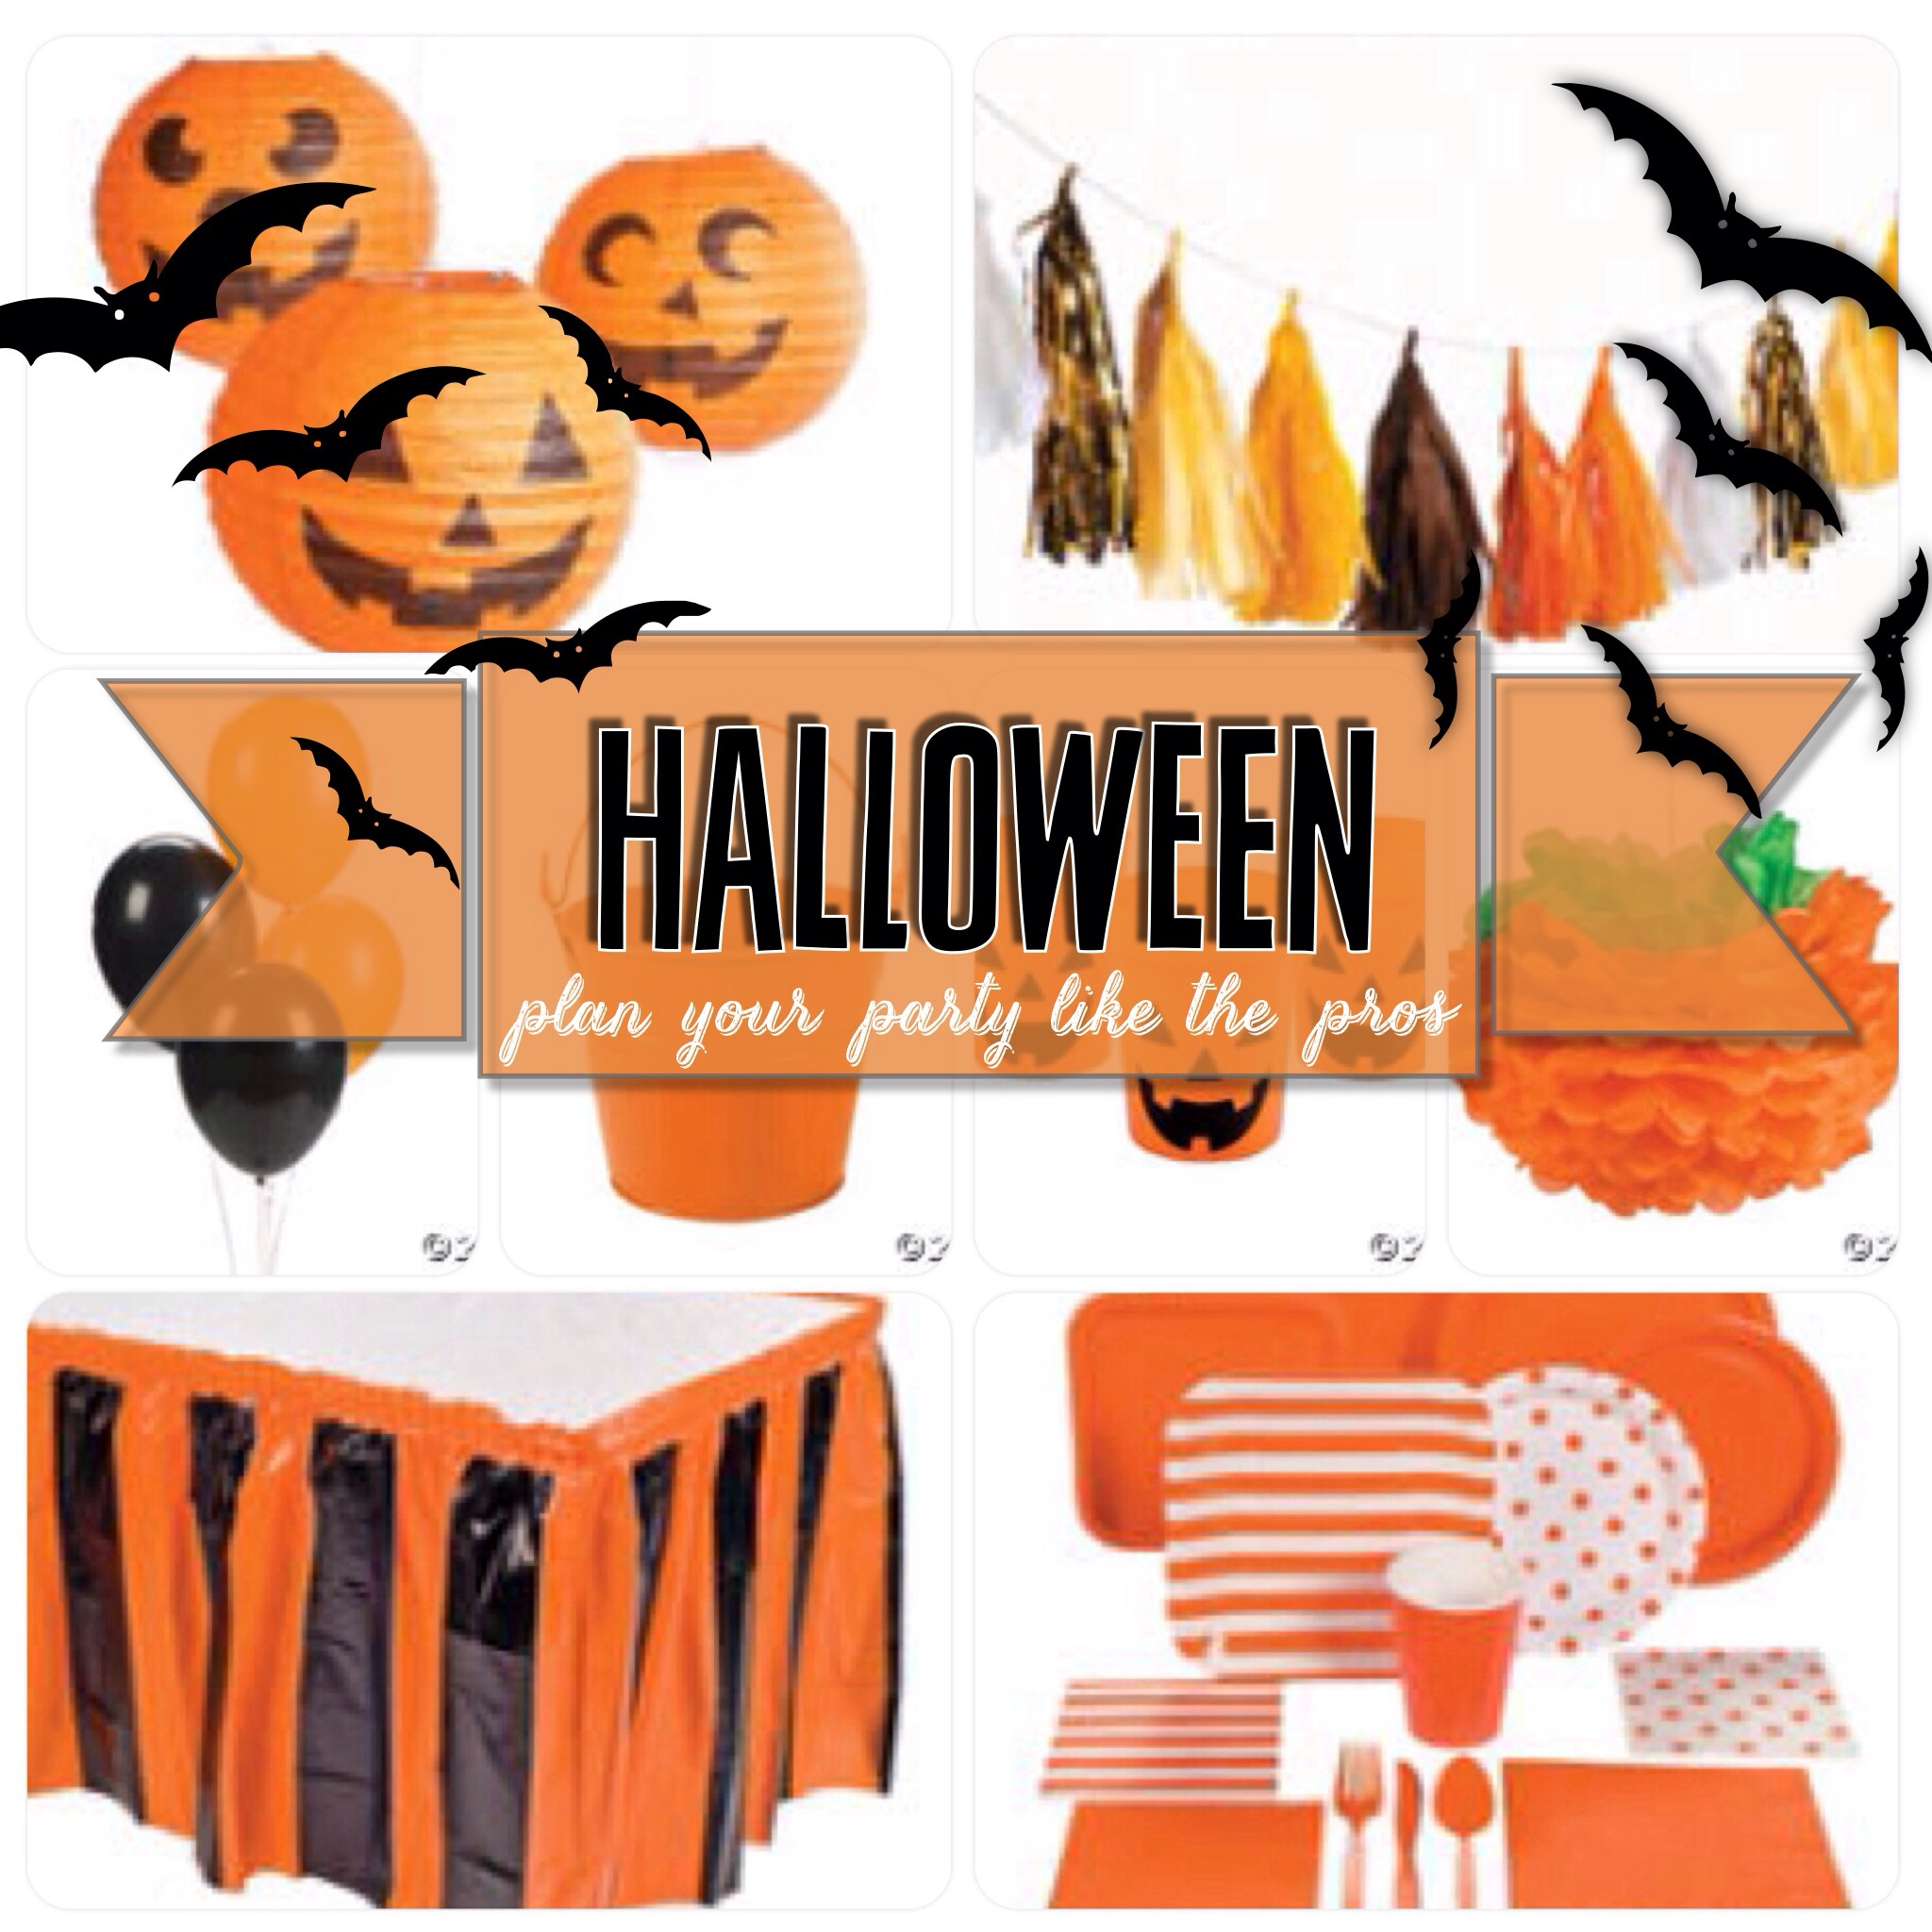 Halloween Party- Plan Your Party Like the Pros Jack-O-Lantern Orange Black Pumpkin